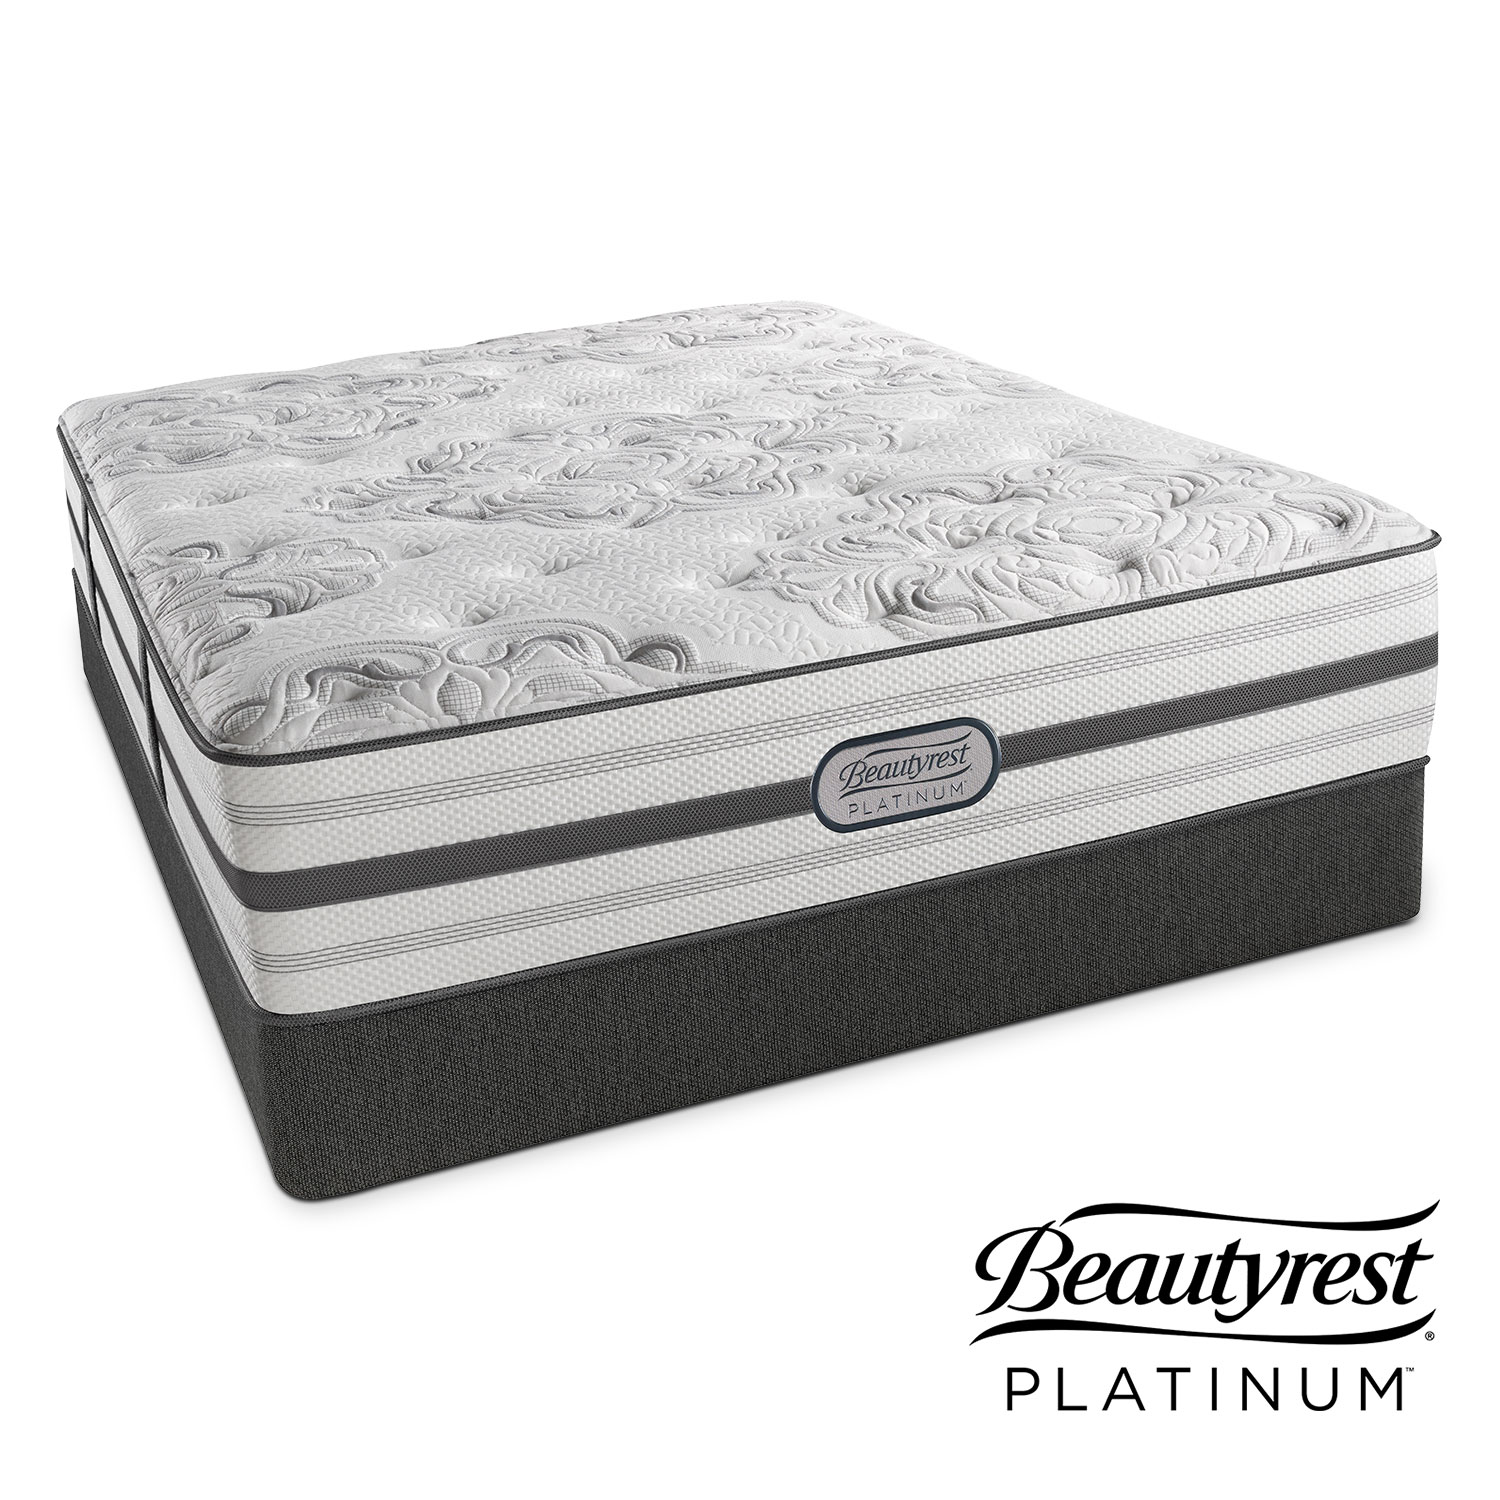 Mattresses and Bedding - Alexandria Queen Mattress/Foundation Set